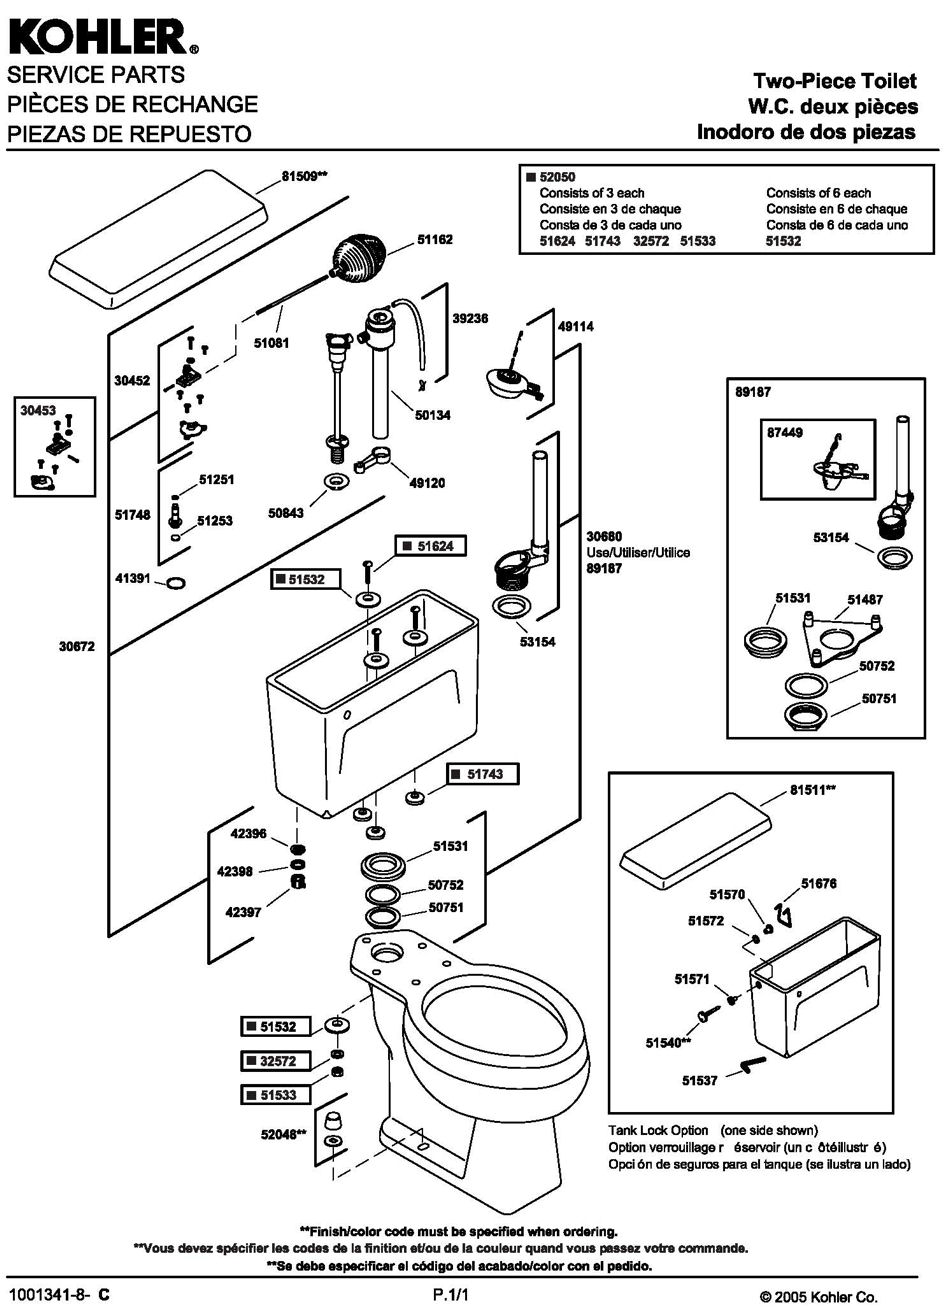 Kohler Xt 6 Engine Diagram, Kohler, Get Free Image About. Getting Rid Of Mildew Smell In Basement. Basement Apartment In Mississauga. Walk Out Basement Home Plans. Cost Of Tanking A Basement. House Plans With Walkout Basement In Back. Toilet Sump Pump Basement. Basement Collection. Frank Betz House Plans With Basement